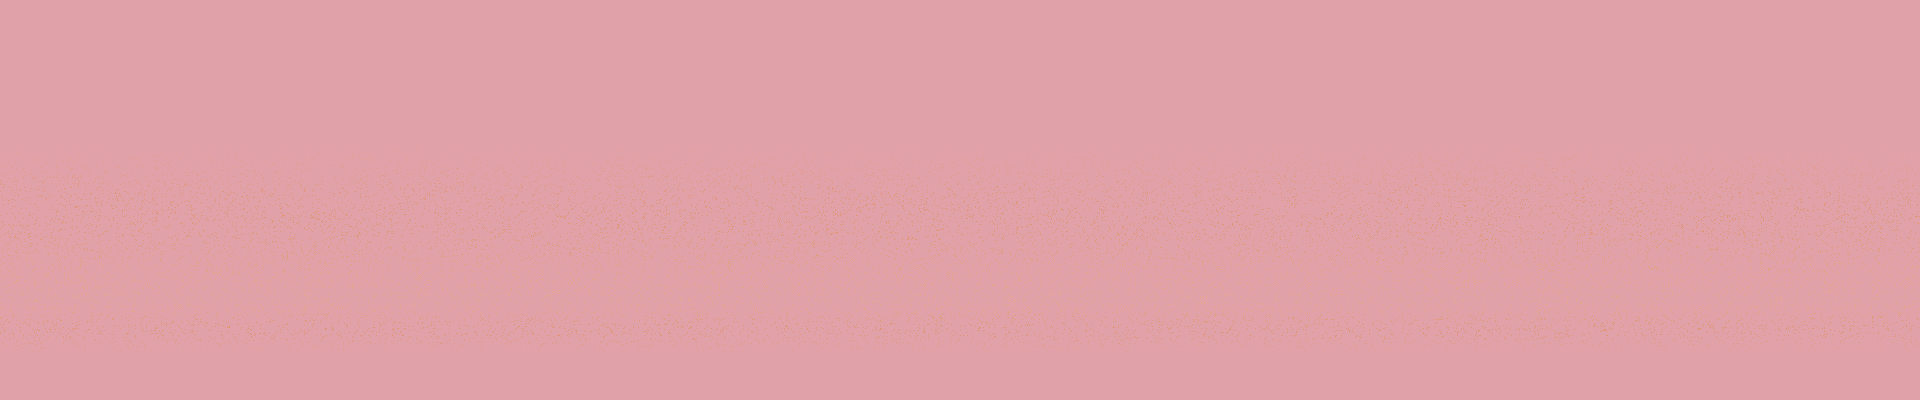 Pink_background.png